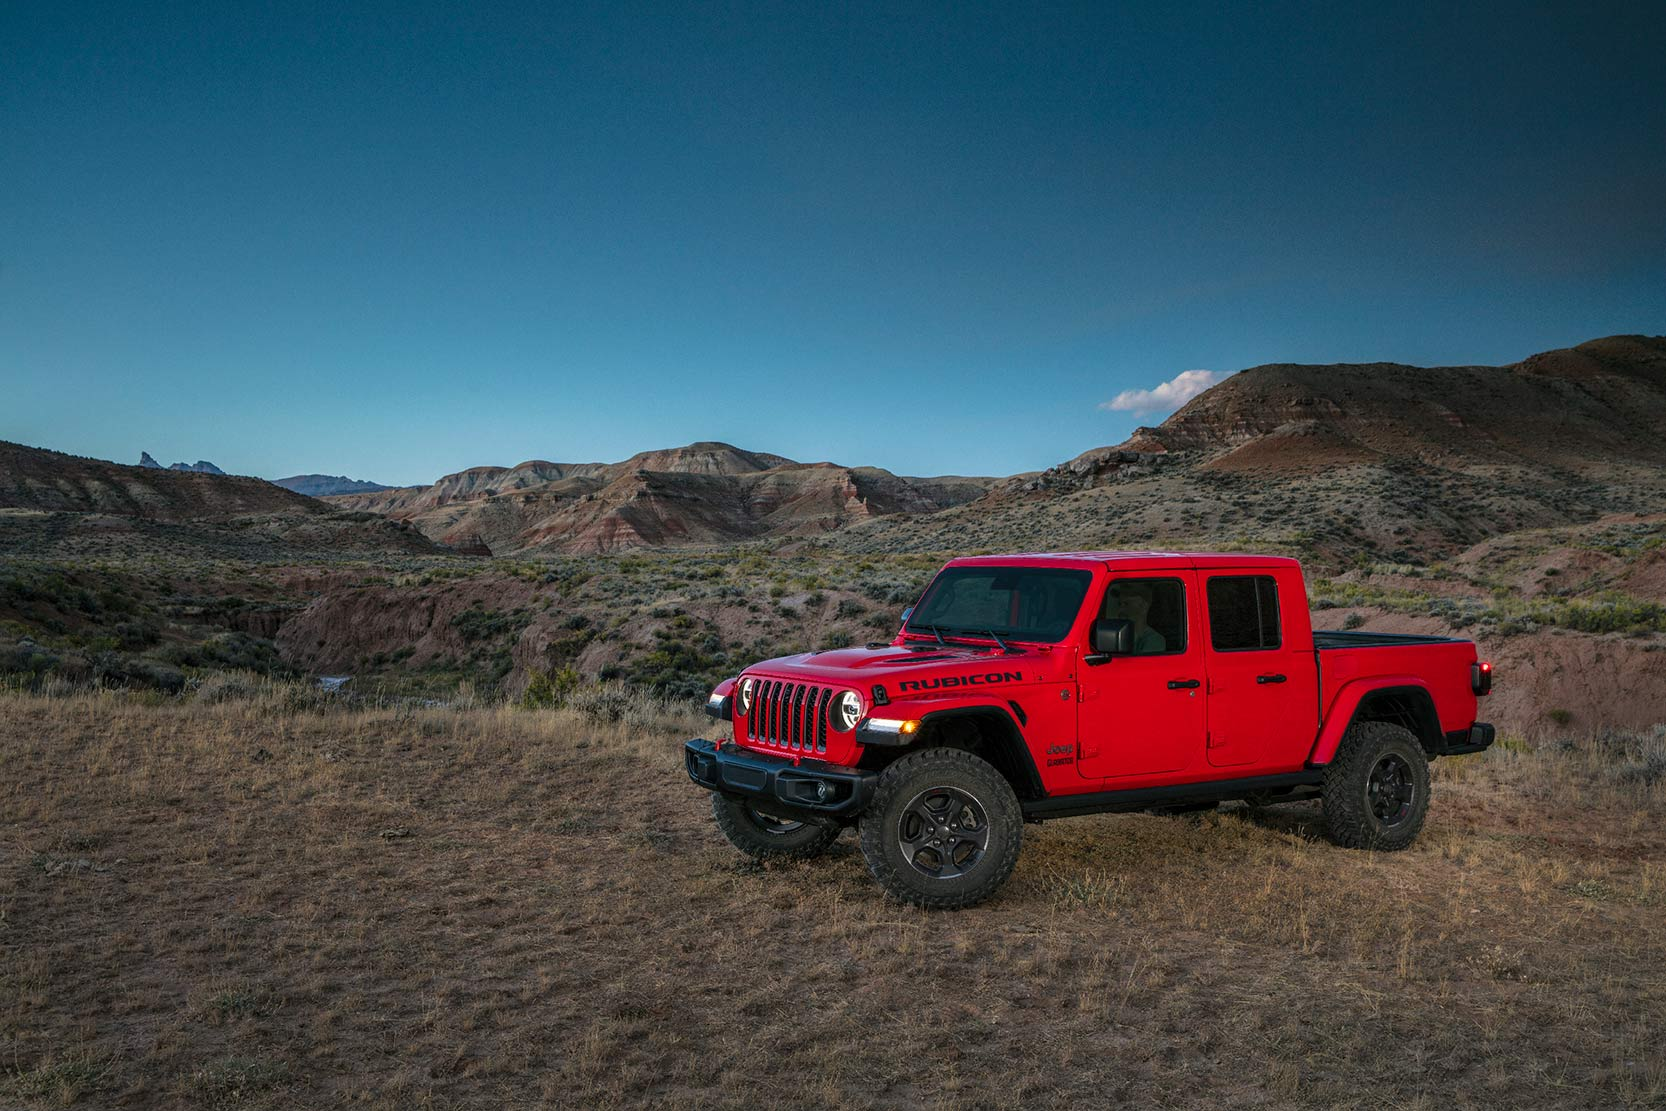 Exterieur_Jeep-Gladiator_26